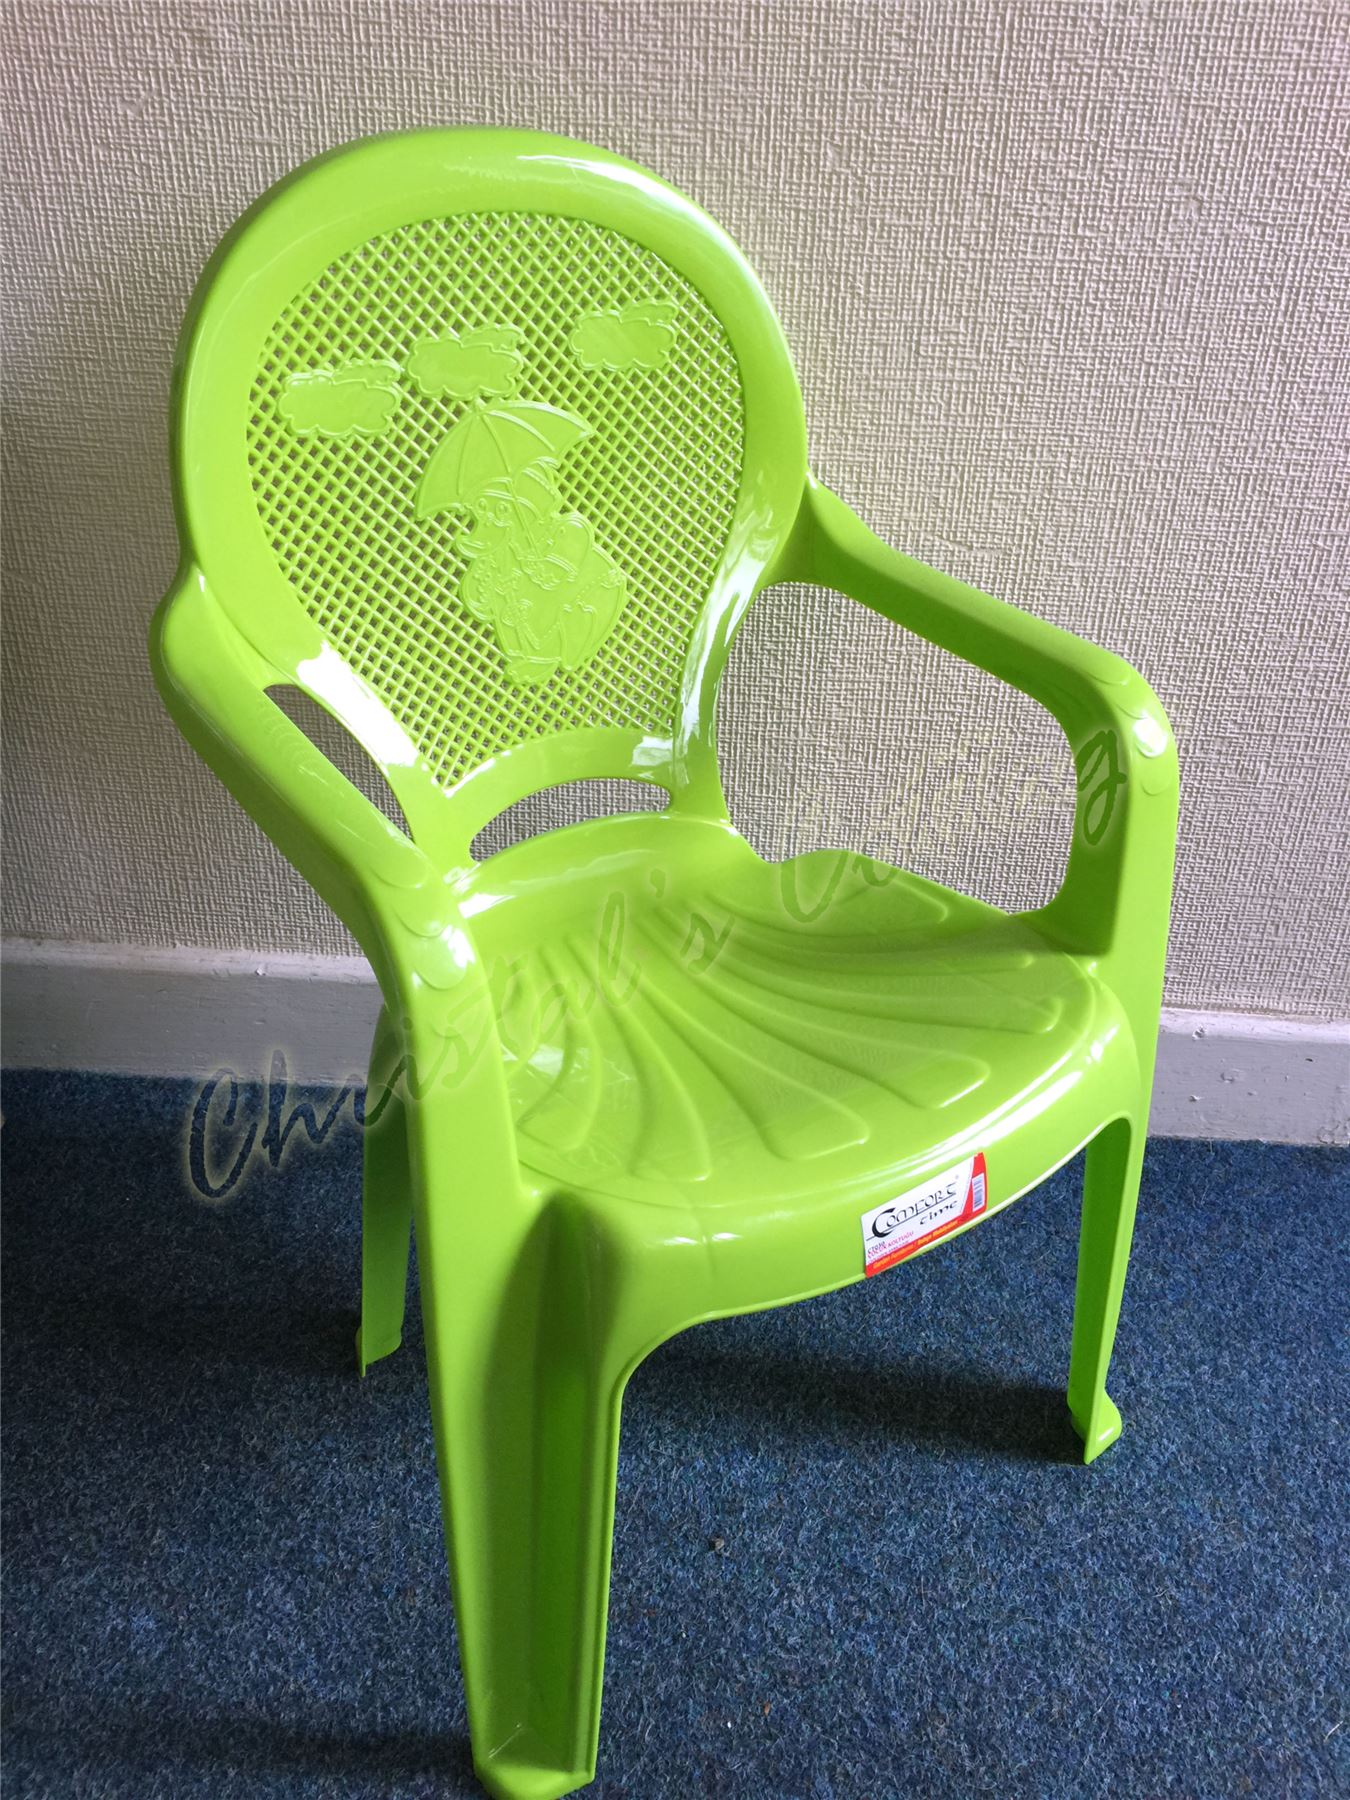 kids stackable chairs baby acapulco chair children plastic indoor outdoor garden